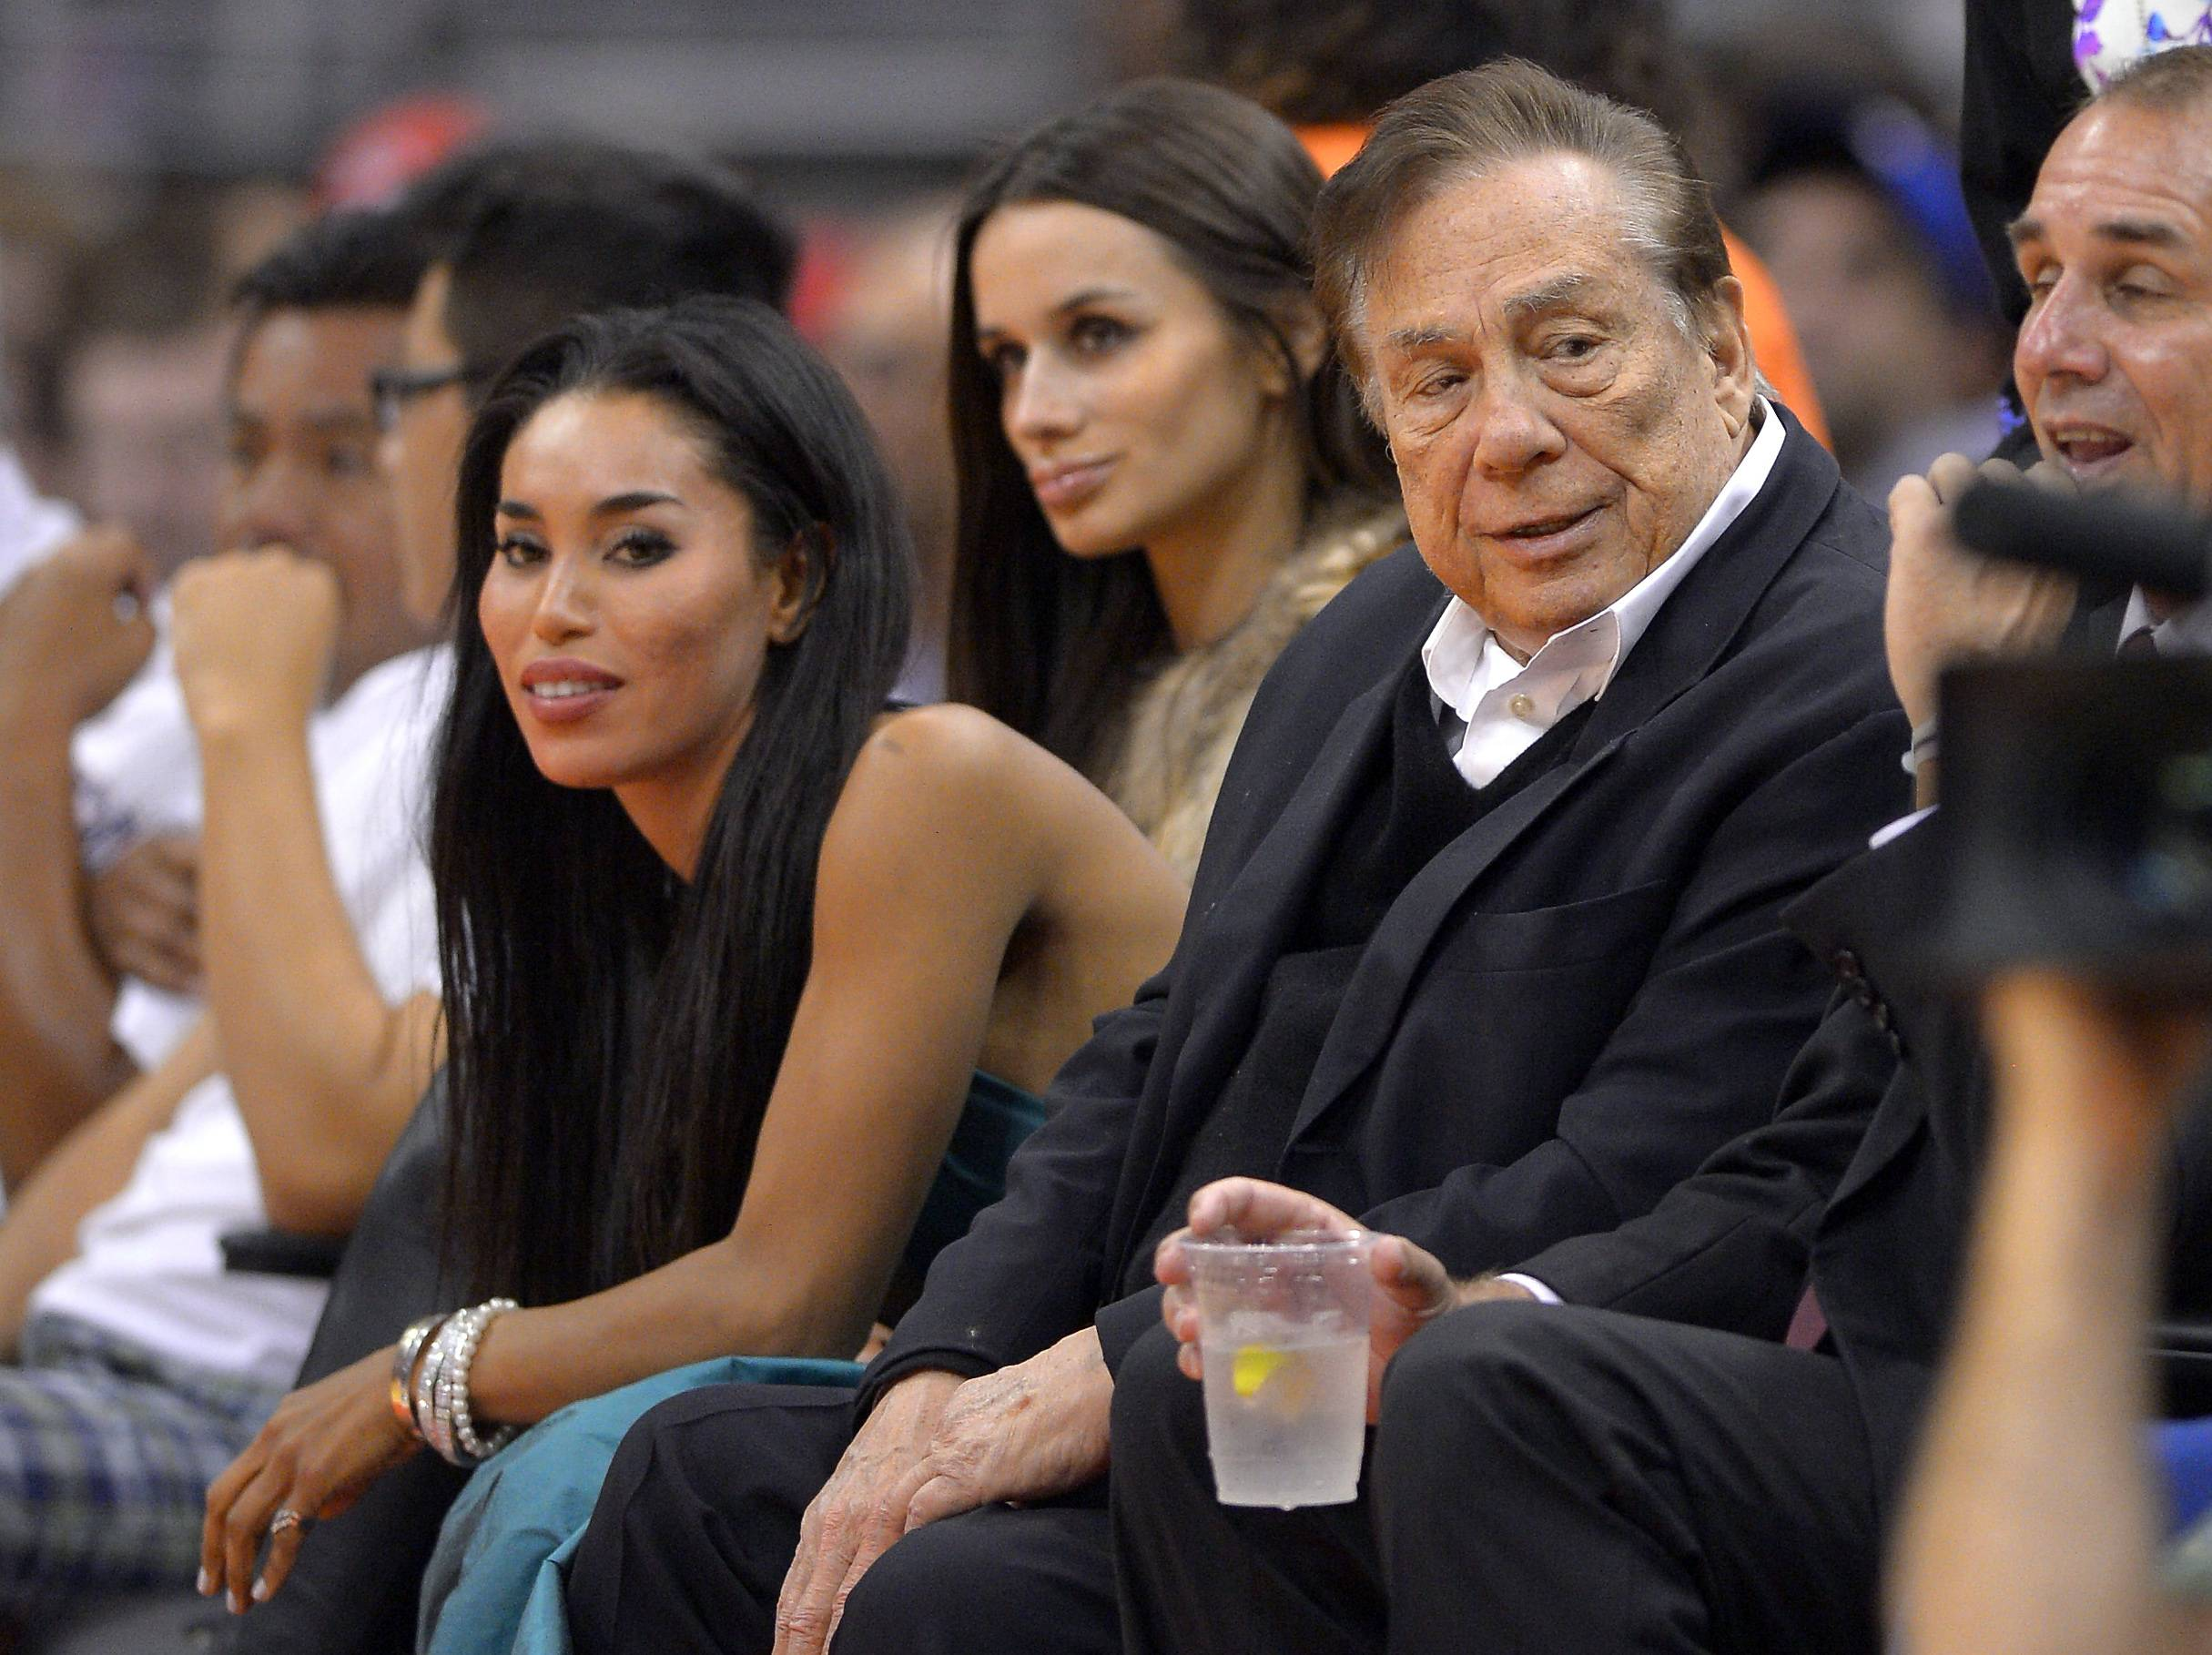 "In this photo taken on Friday, Oct. 25, 2013, Los Angeles Clippers owner Donald Sterling, right, and V. Stiviano, left, watch the Clippers play the Sacramento Kings during the first half of an NBA basketball game in Los Angeles. The NBA is investigating a report of an audio recording in which a man purported to be Sterling makes racist remarks while speaking to Stiviano.  NBA spokesman Mike Bass said in a statement Saturday, April 26, 2014, that the league is in the process of authenticating the validity of the recording posted on TMZ's website. Bass called the comments ""disturbing and offensive."""